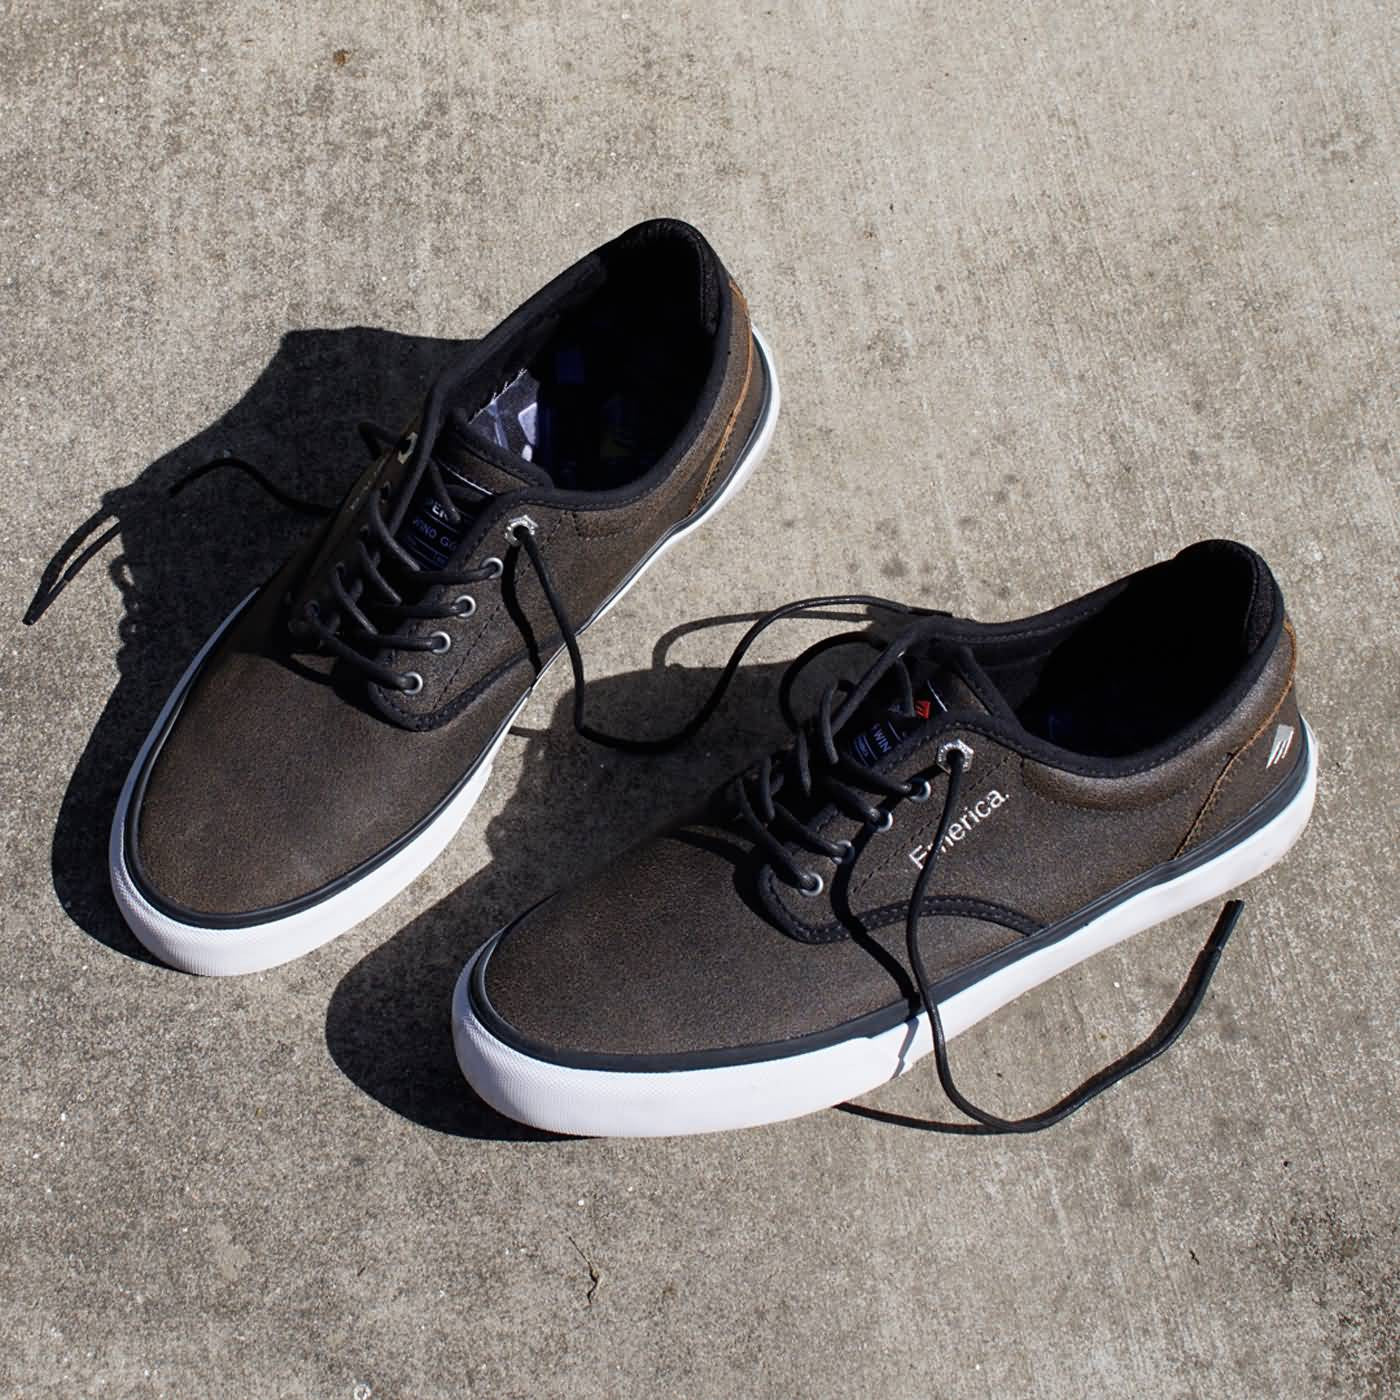 e916682d9bf0df Emerica x Independent Trucks 2017 Collab | Skate Apparel & Footwear  Collection